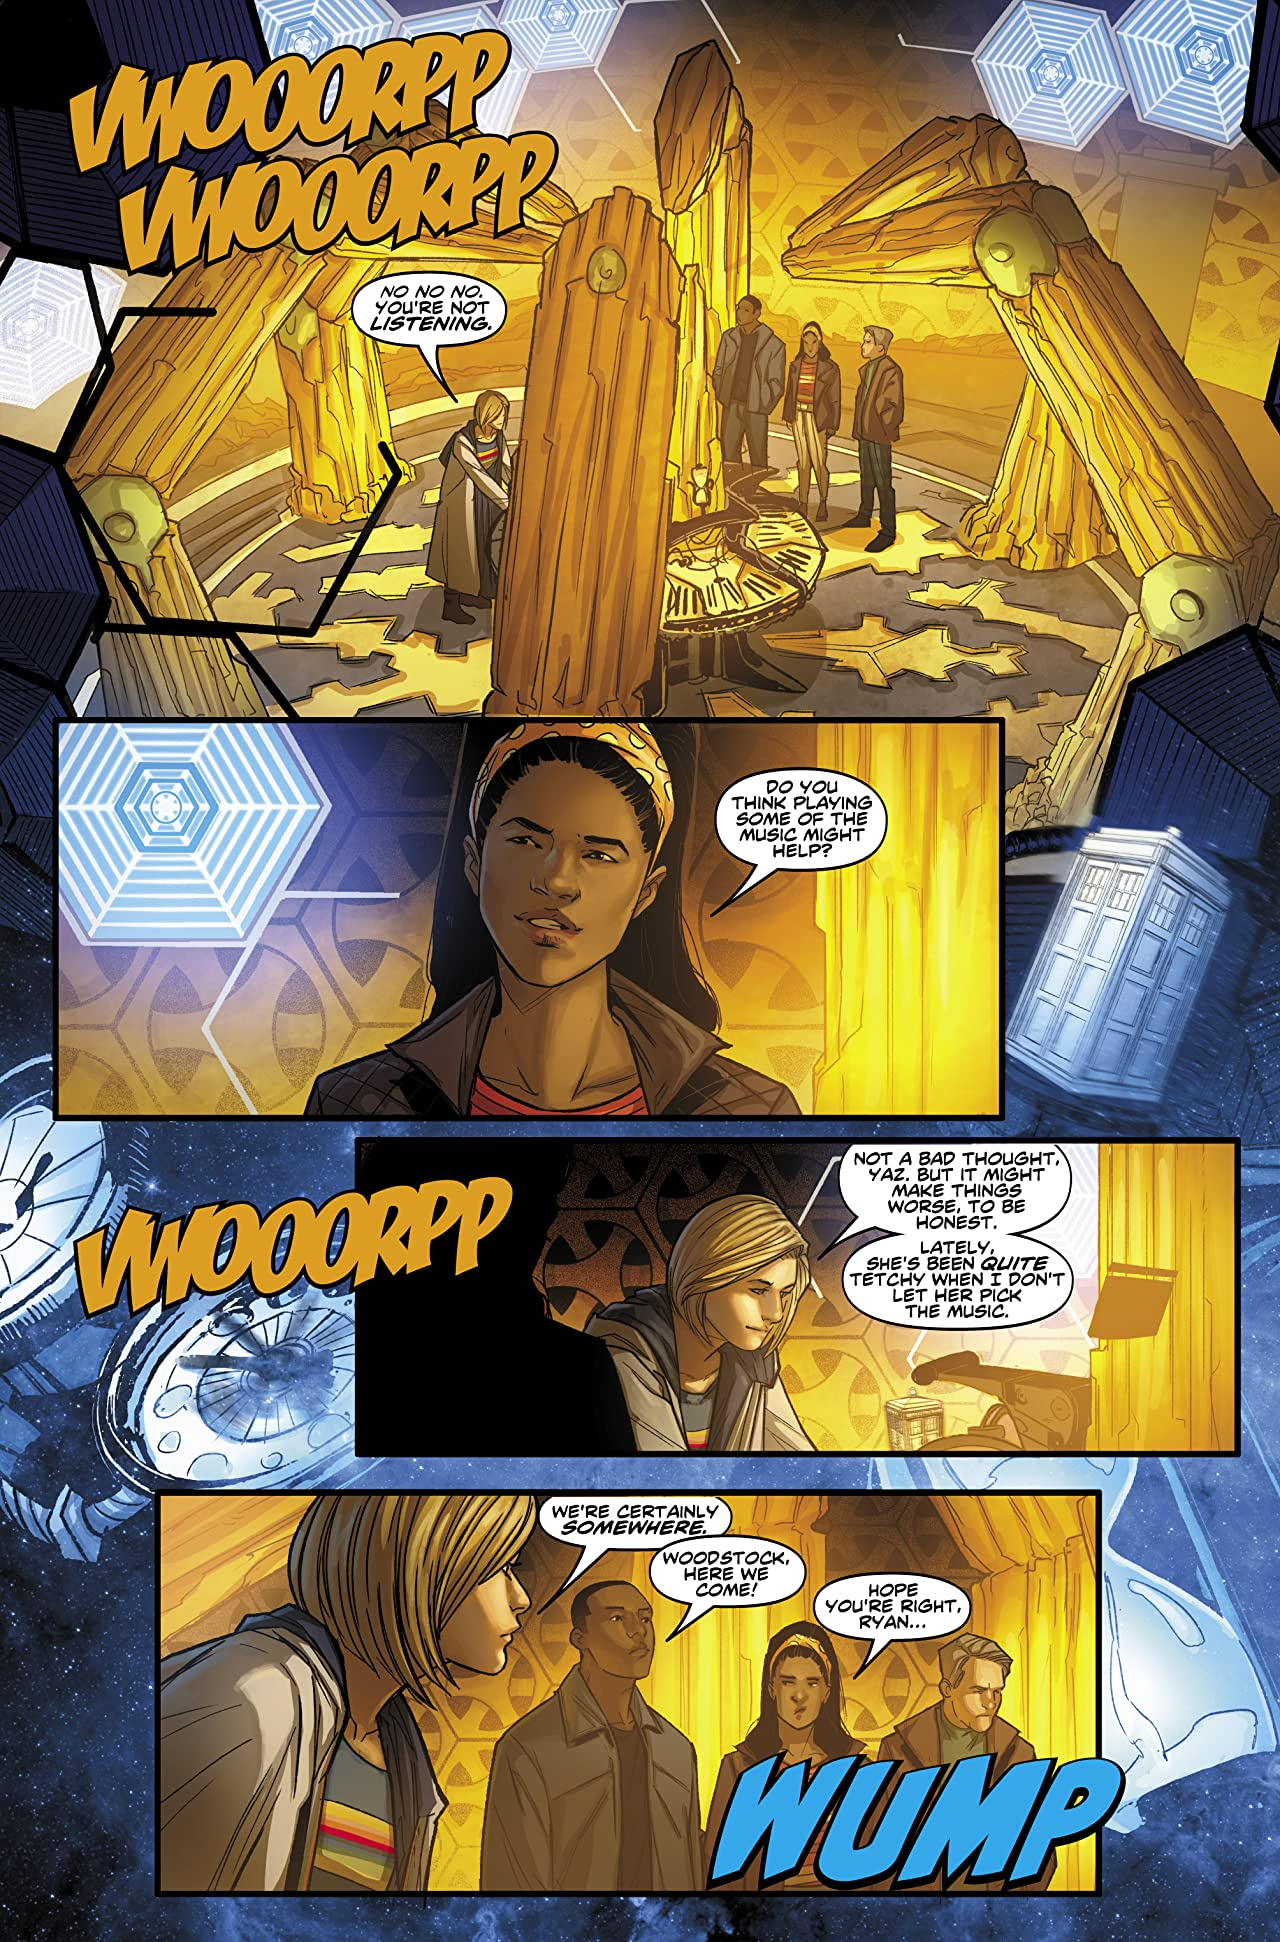 Doctor Who: The Thirteenth Doctor #2.1